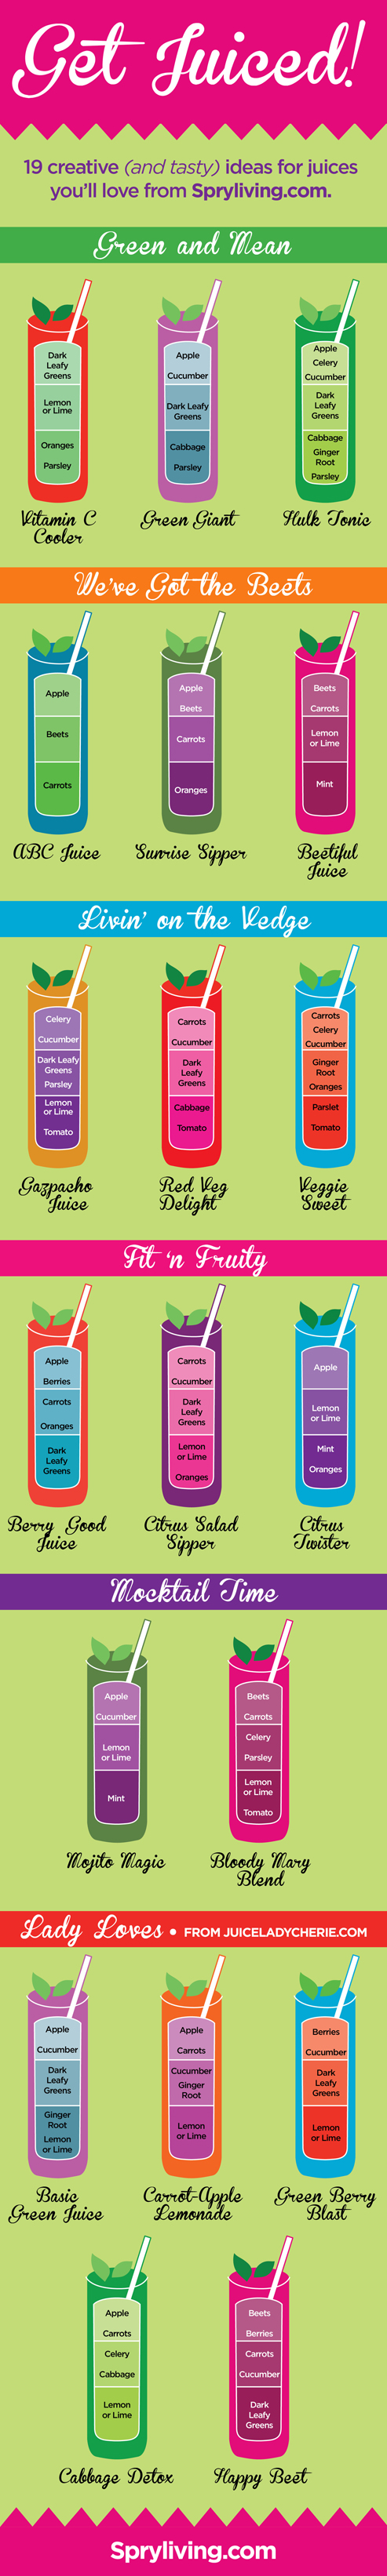 Juicing Infographic-Final